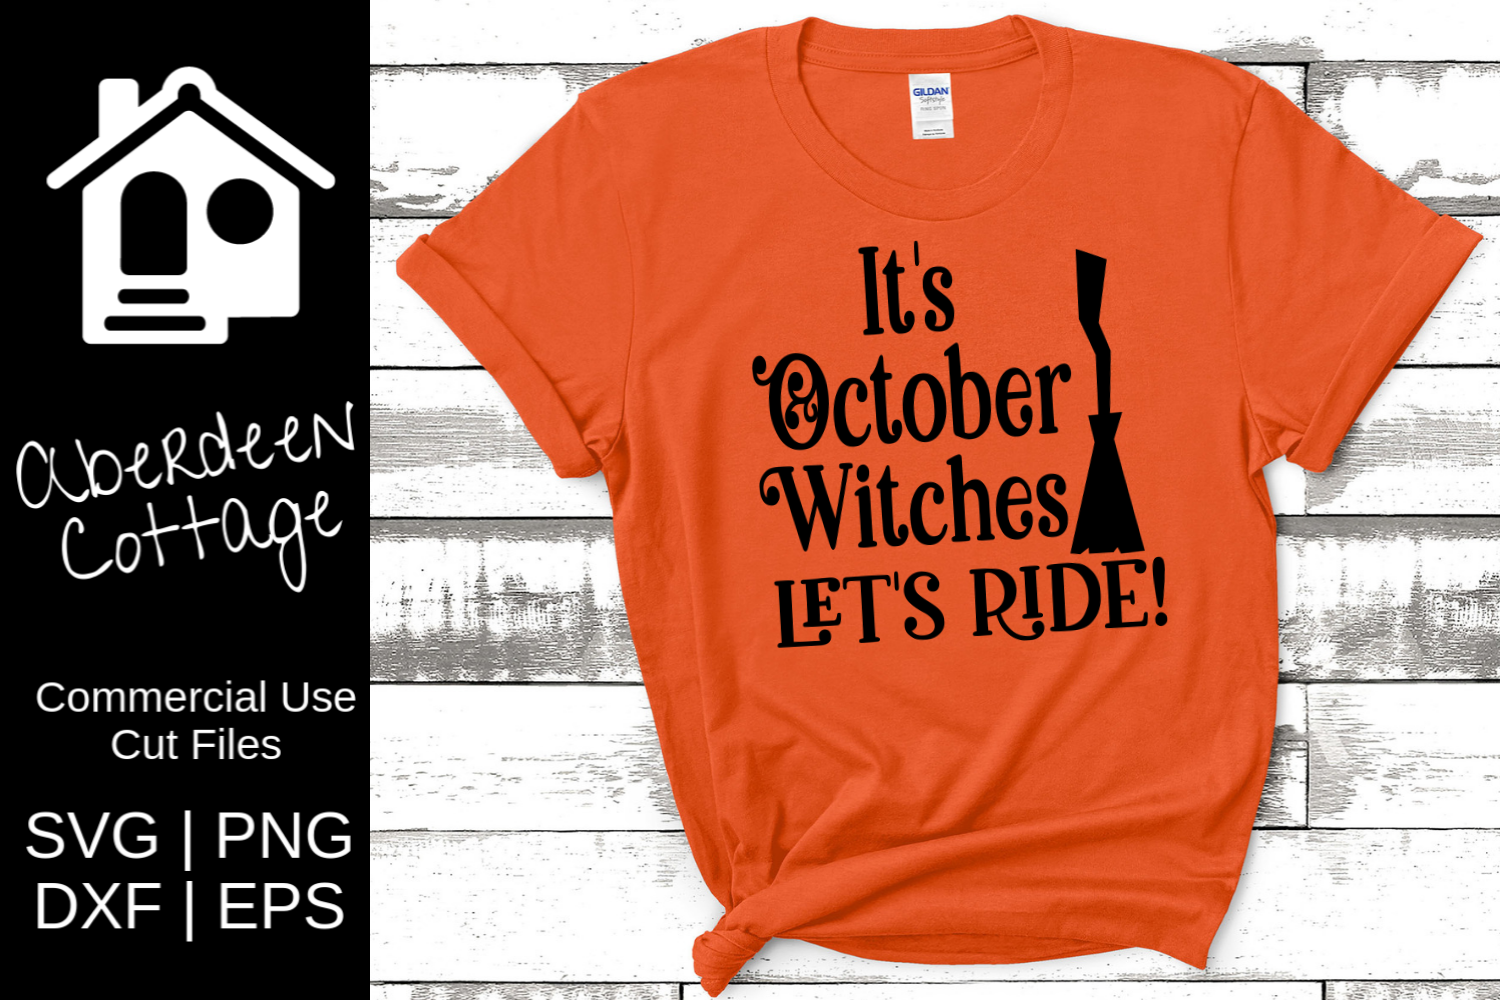 It's October Witches Let's Ride SVG example image 1